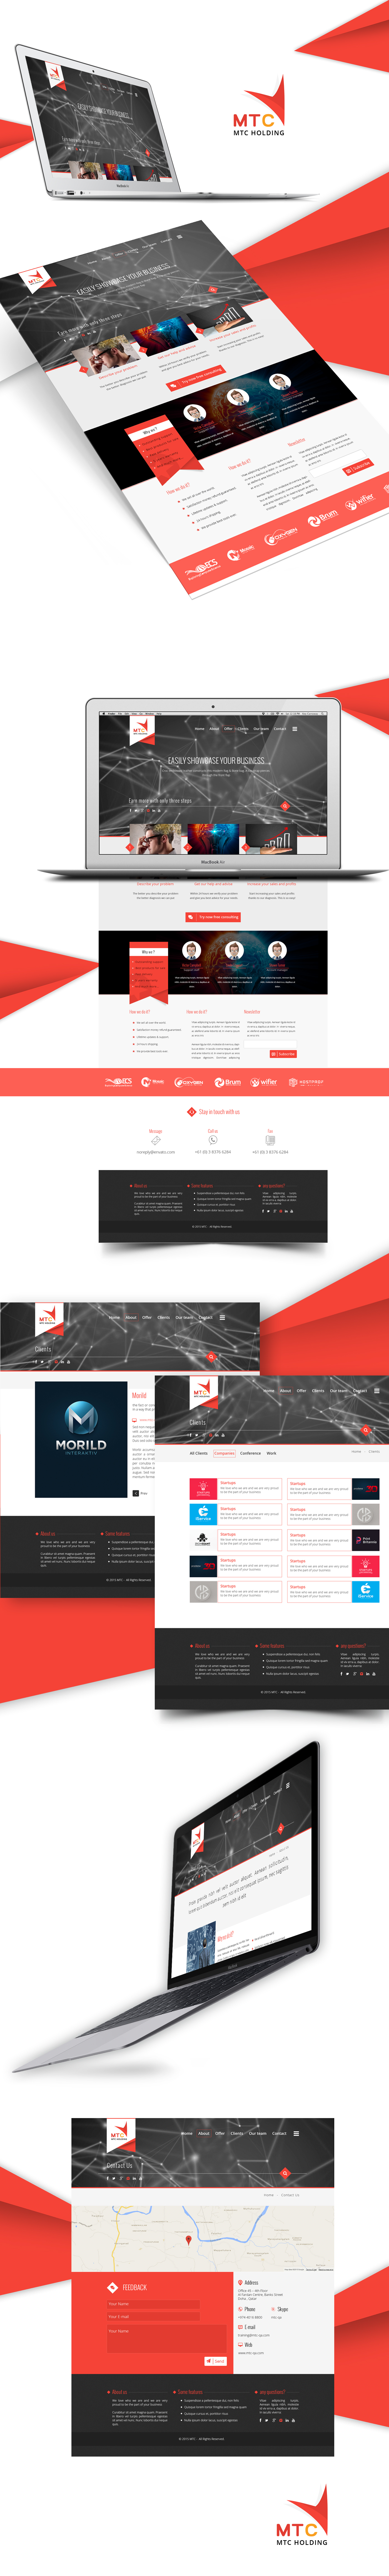 UI/UX Design for MTC Holding Company…